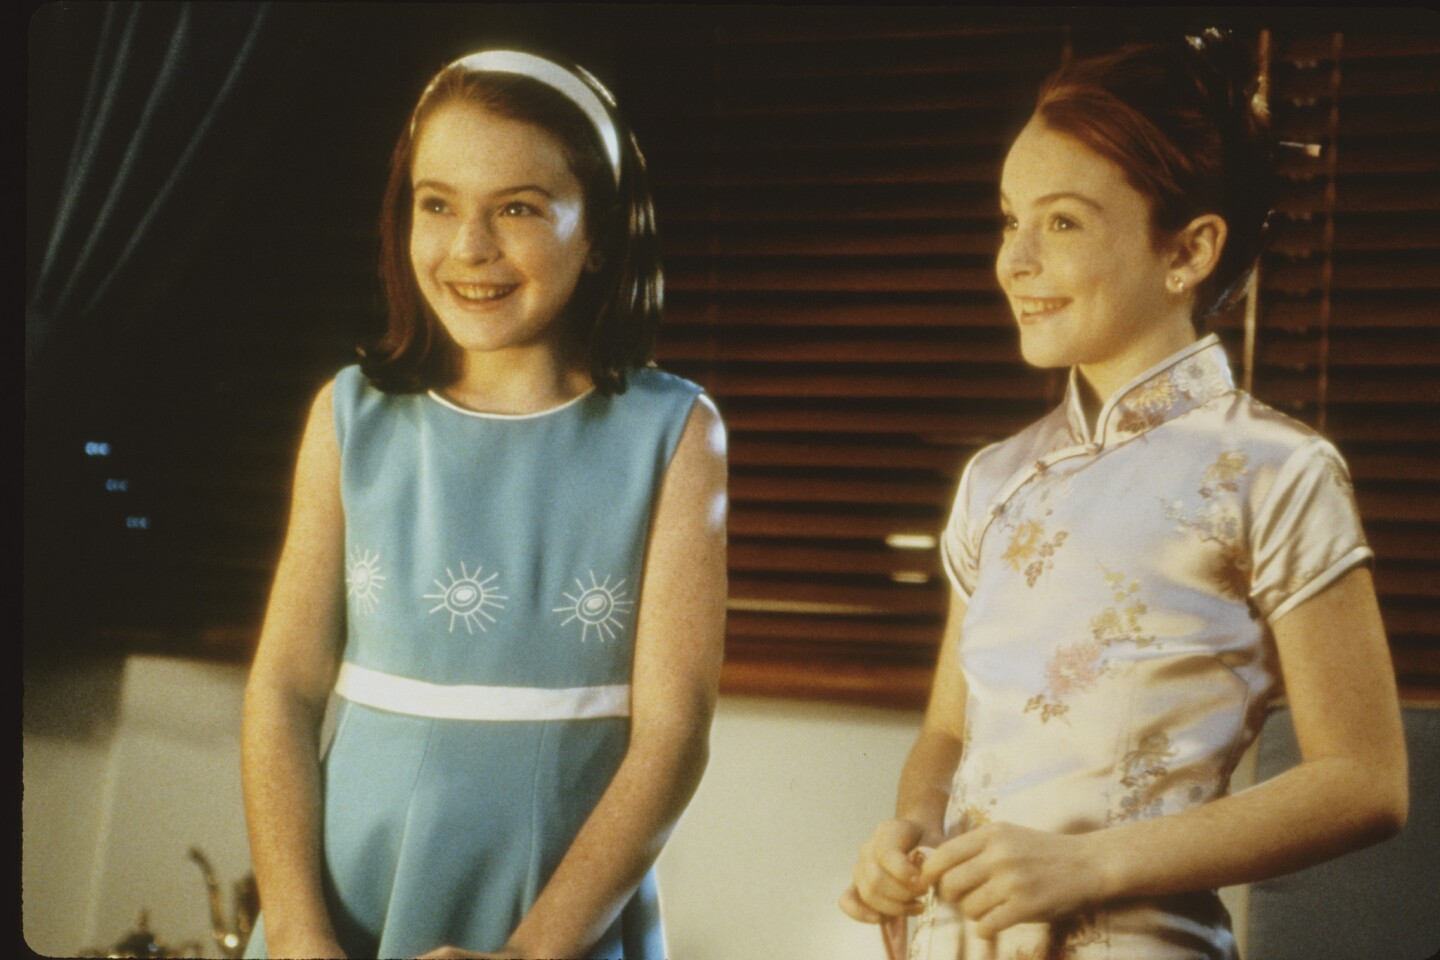 """Lindsay Lohan began her career at age 5, appearing in ads for Toys R Us and Calvin Klein Kids, among other brands. Her first acting role was on the sitcom """"Another World,"""" but she first came to national attention when she played the dual role of Hallie Parker and Annie James in the 1998 remake of """"The Parent Trap."""" Times film critic Kenneth Turan wrote at the time that the film """"can't be imagined without its 11-year-old redheaded star, Lindsay Lohan. Her bright spirit and impish smile make for an immensely likable young person we take to our hearts almost at once. Lohan's the soul of this film as much as Hayley Mills was of the original."""""""